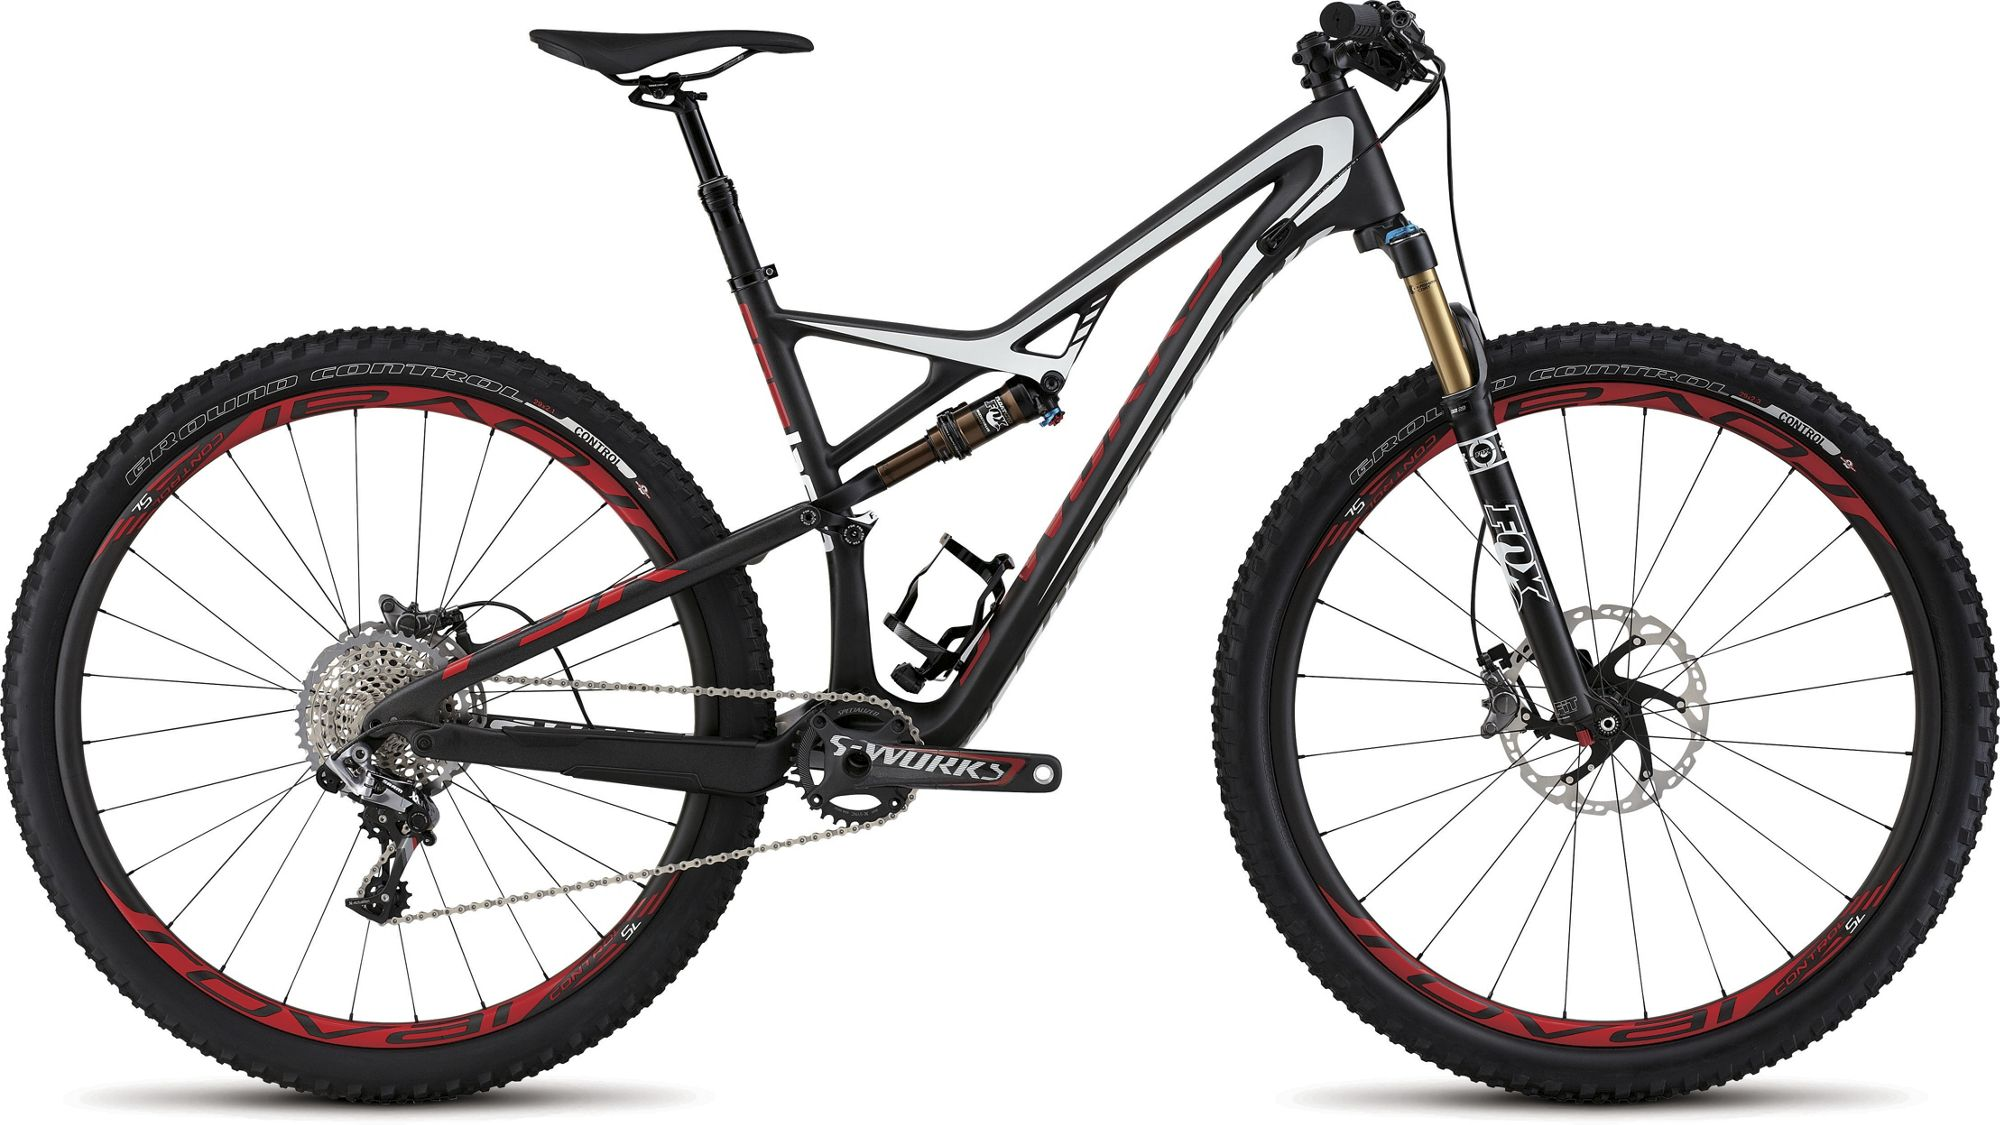 Specialized S Works Camber 2015 Review The Bike List